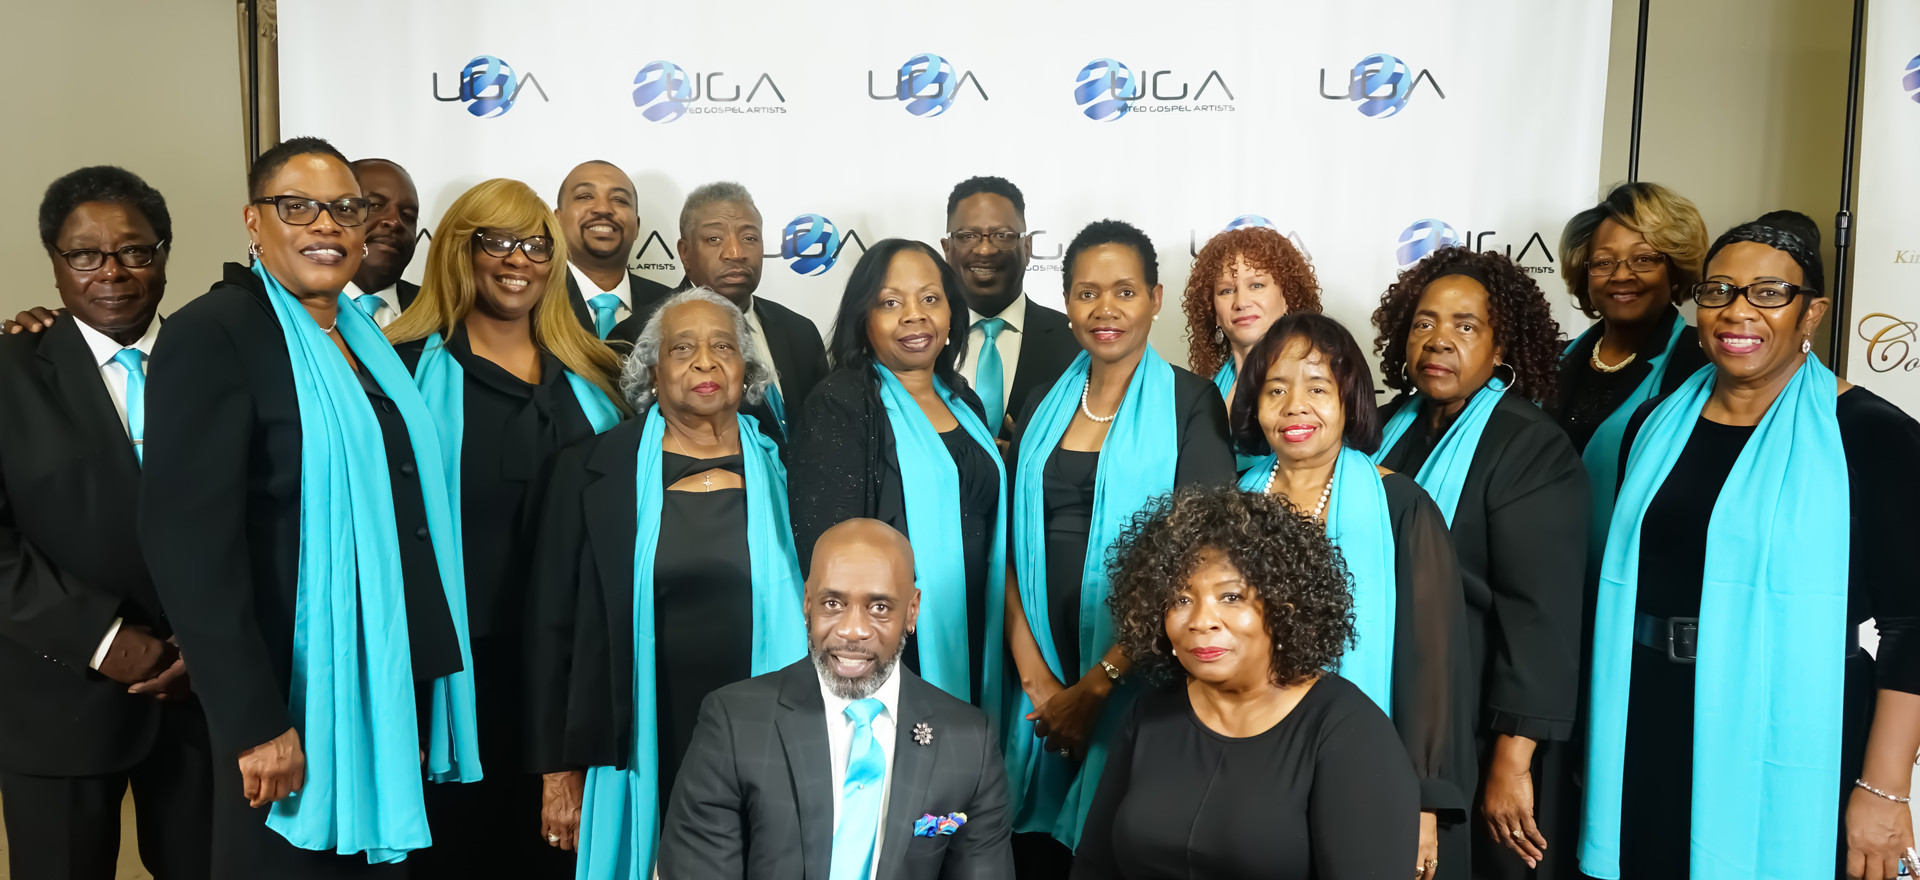 United Gospel Artists - G.M.W.A. LA Chapter